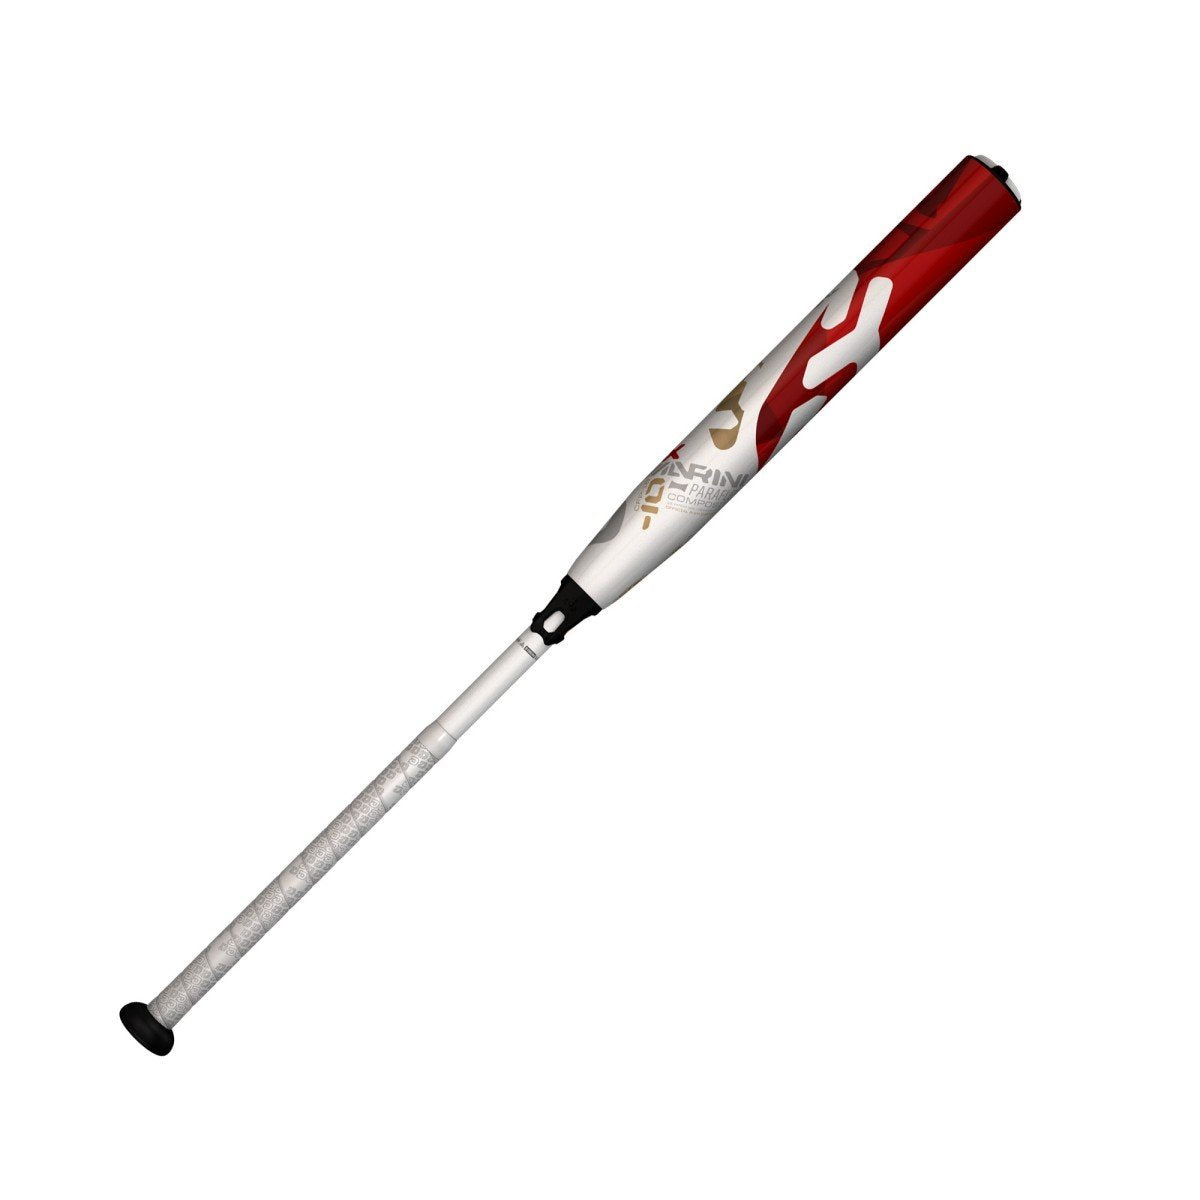 2018 Demarini CFX (-10) Balanced Fastpitch Bat | Preowned Bats